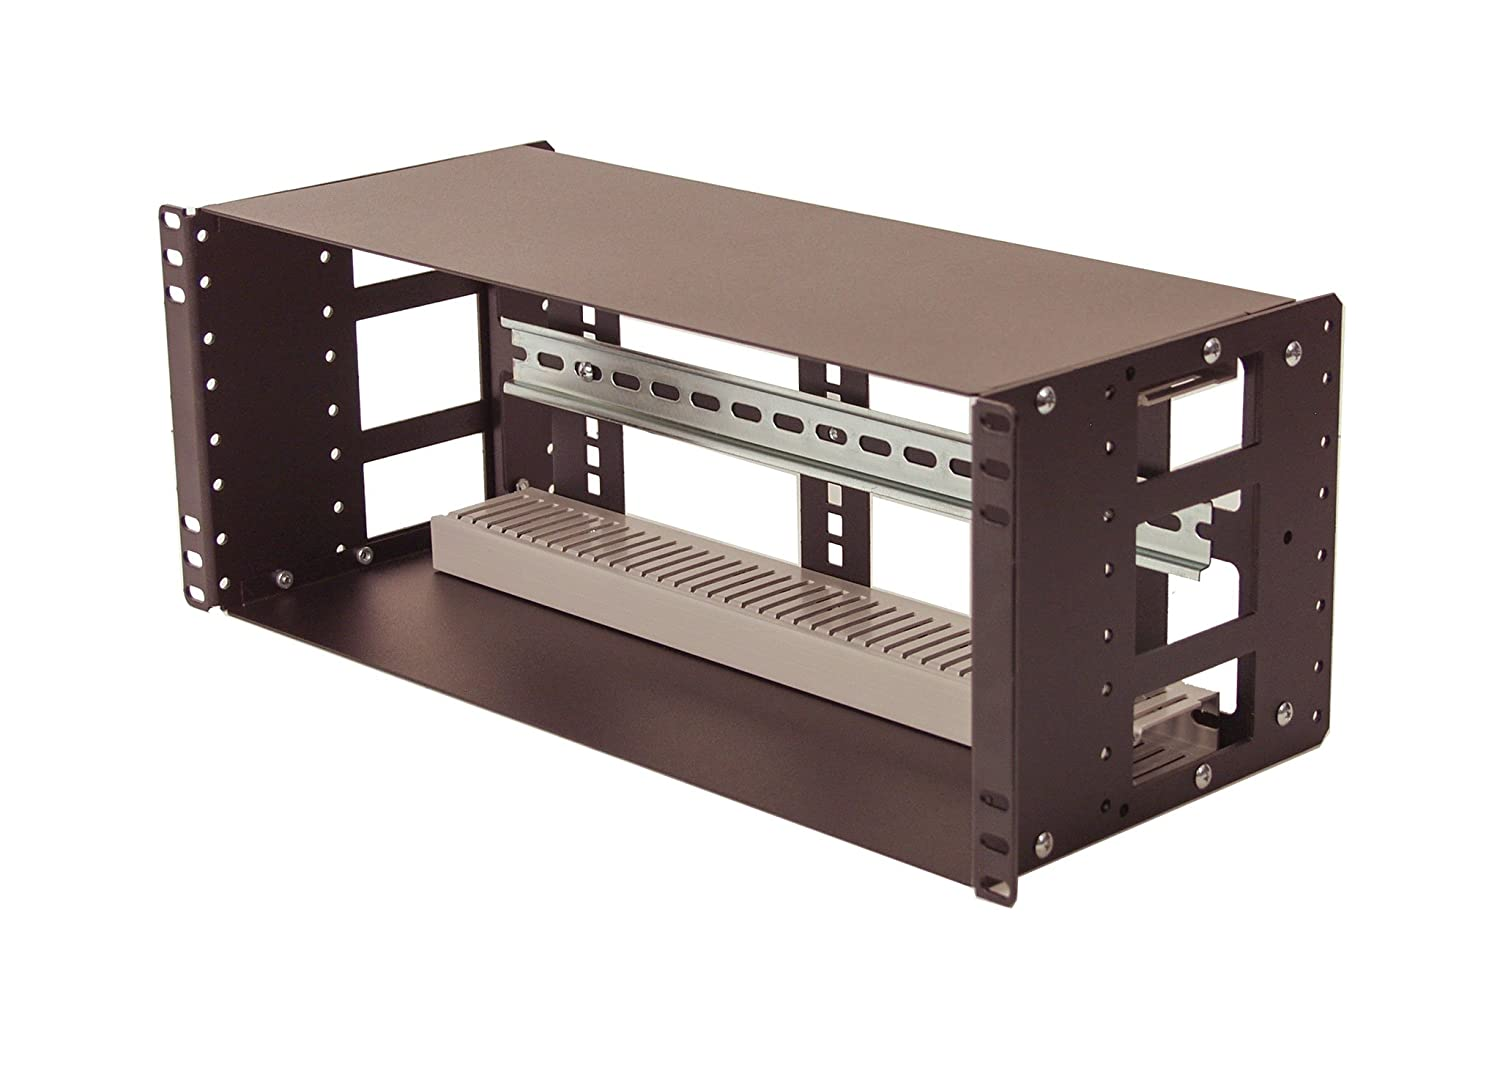 IRP208DB-4U Fully Enclosed Rackmount 4U Compact 8 inch Deep Industrial Din Rail Panel for 19 inch 2-Post Relay Rack or 4-Post Rack Cabinet